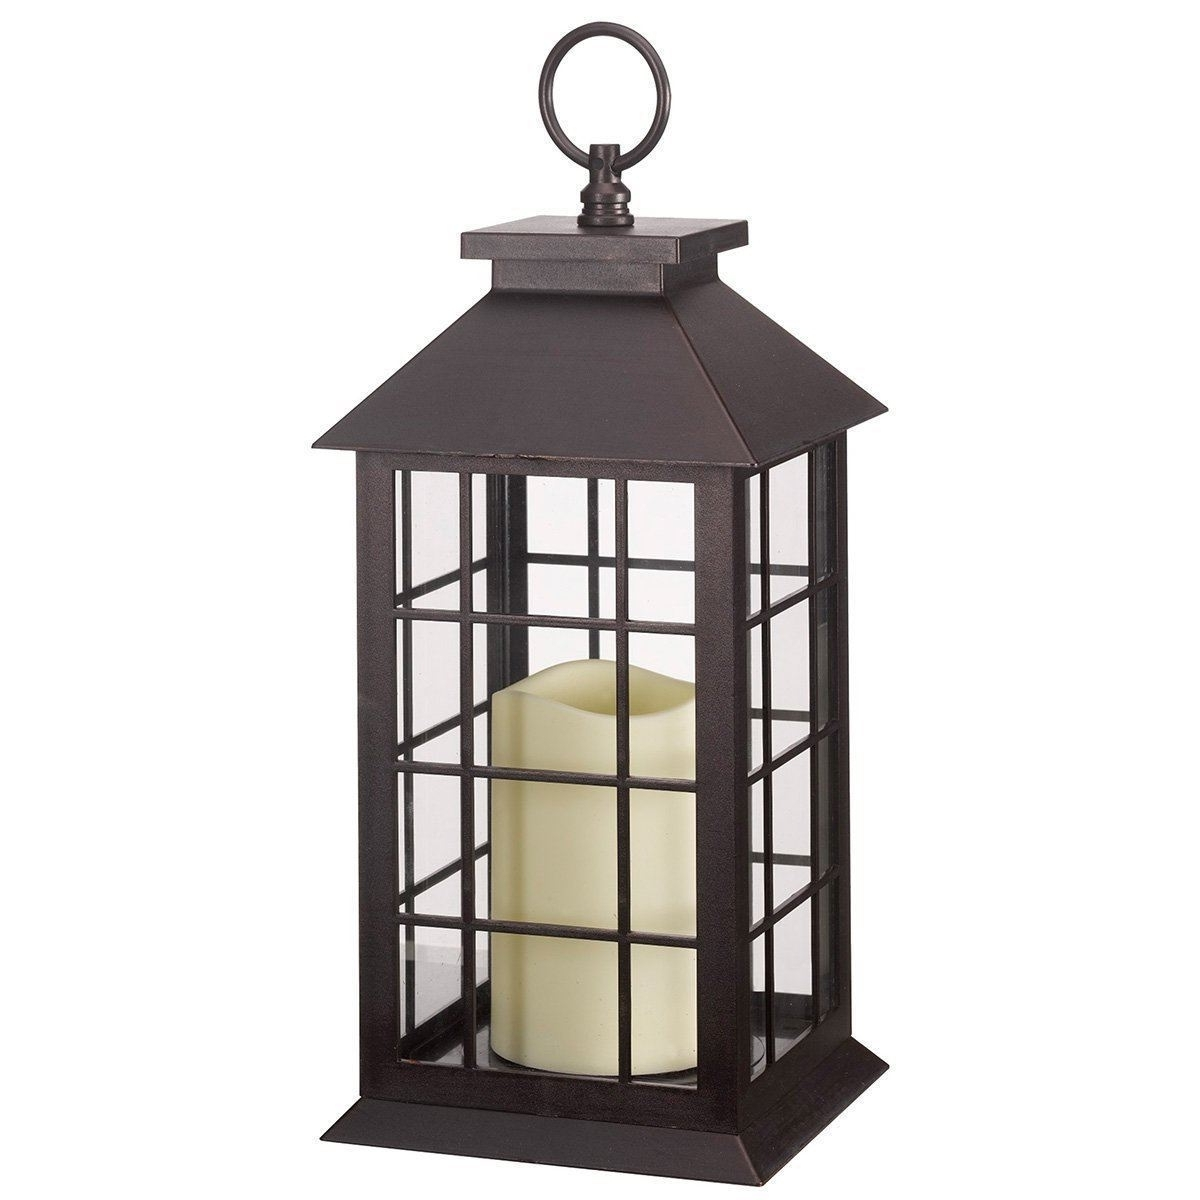 Battery Operated Window Lantern With Timer Led Candle Indoor Outdoor With Regard To 2018 Outdoor Timer Lanterns (View 1 of 20)